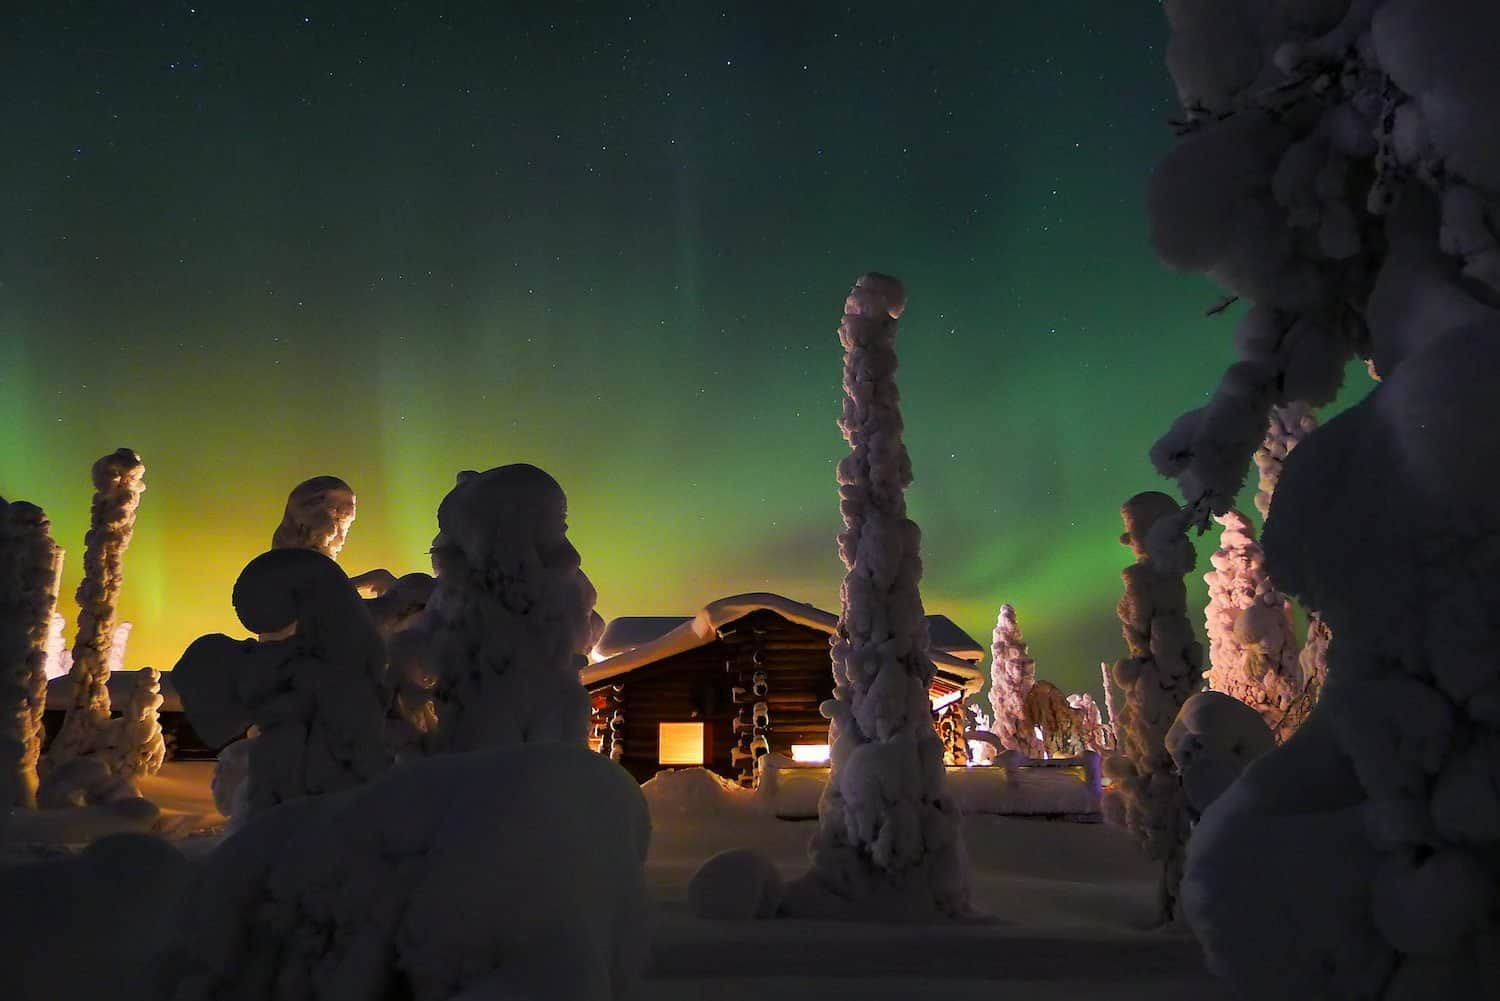 How to See the Northern Lights in Finland - Timo Newton-Syms via Flickr